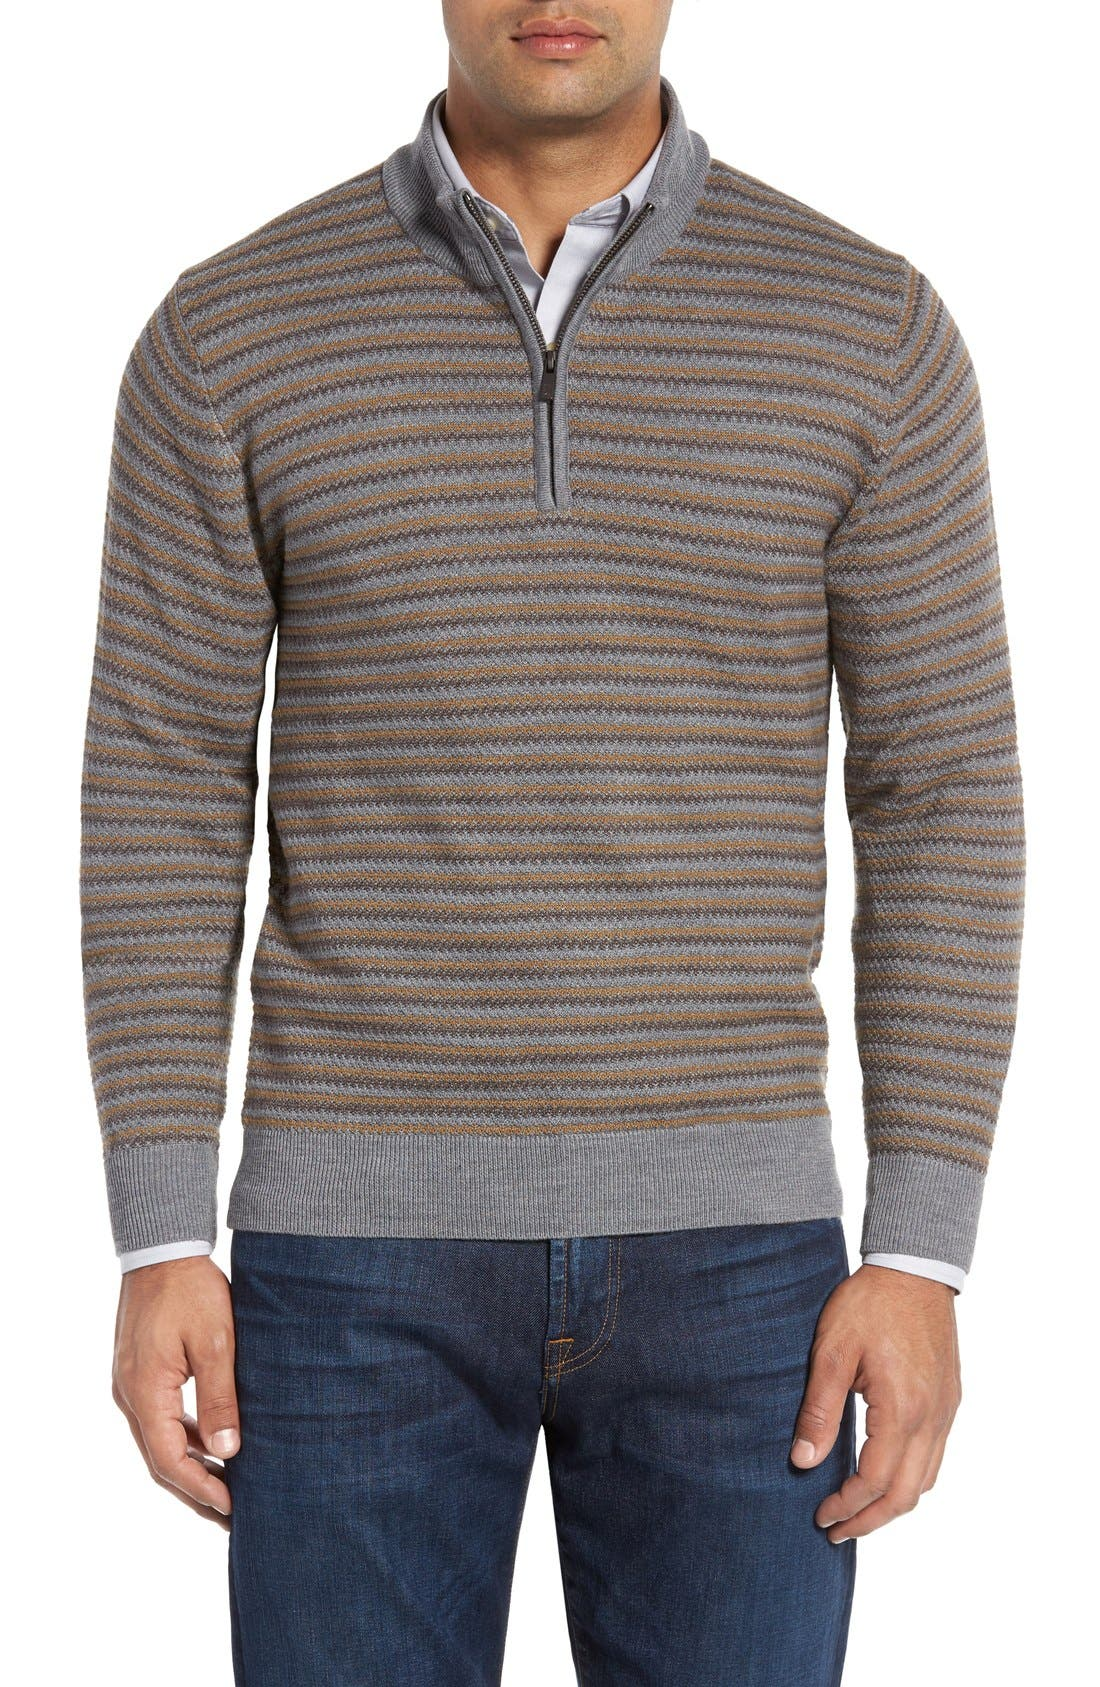 'Douglas Range' Quarter Zip Stripe Wool Blend Sweater,                         Main,                         color, Brown/ Multi